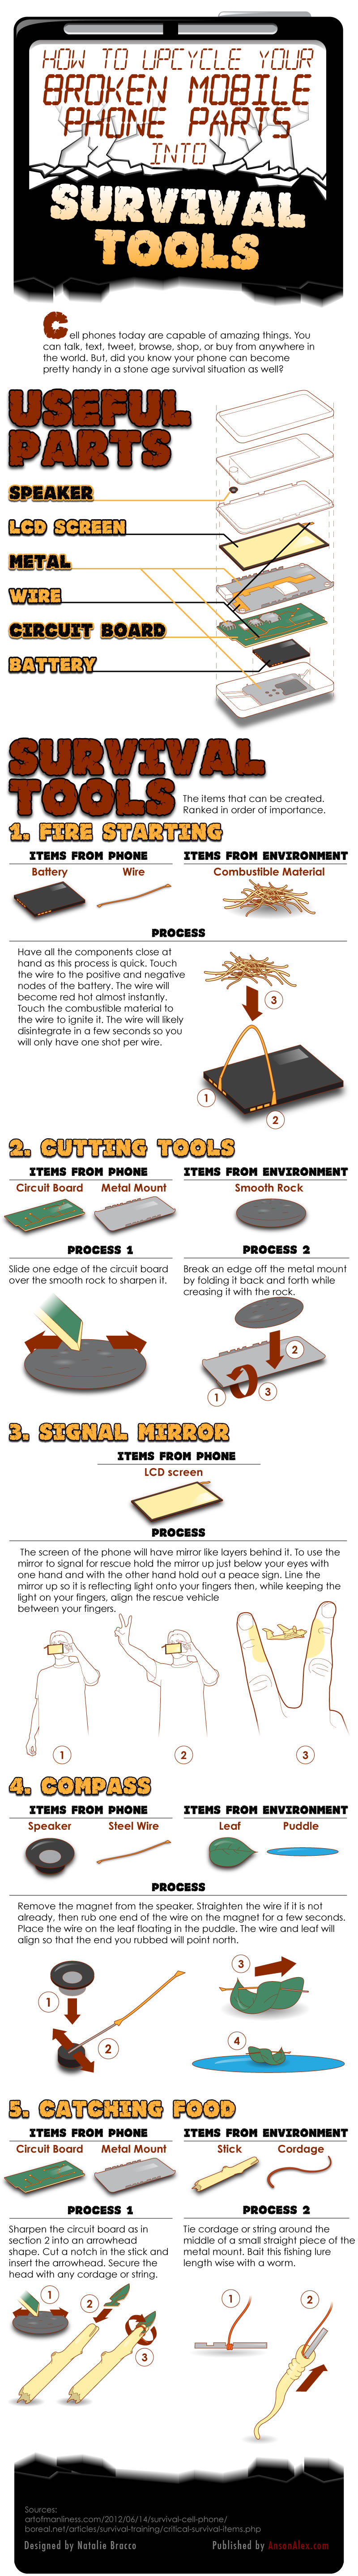 Lifehacking Smartphone Tips For Dire Survival Situations [Infographic]